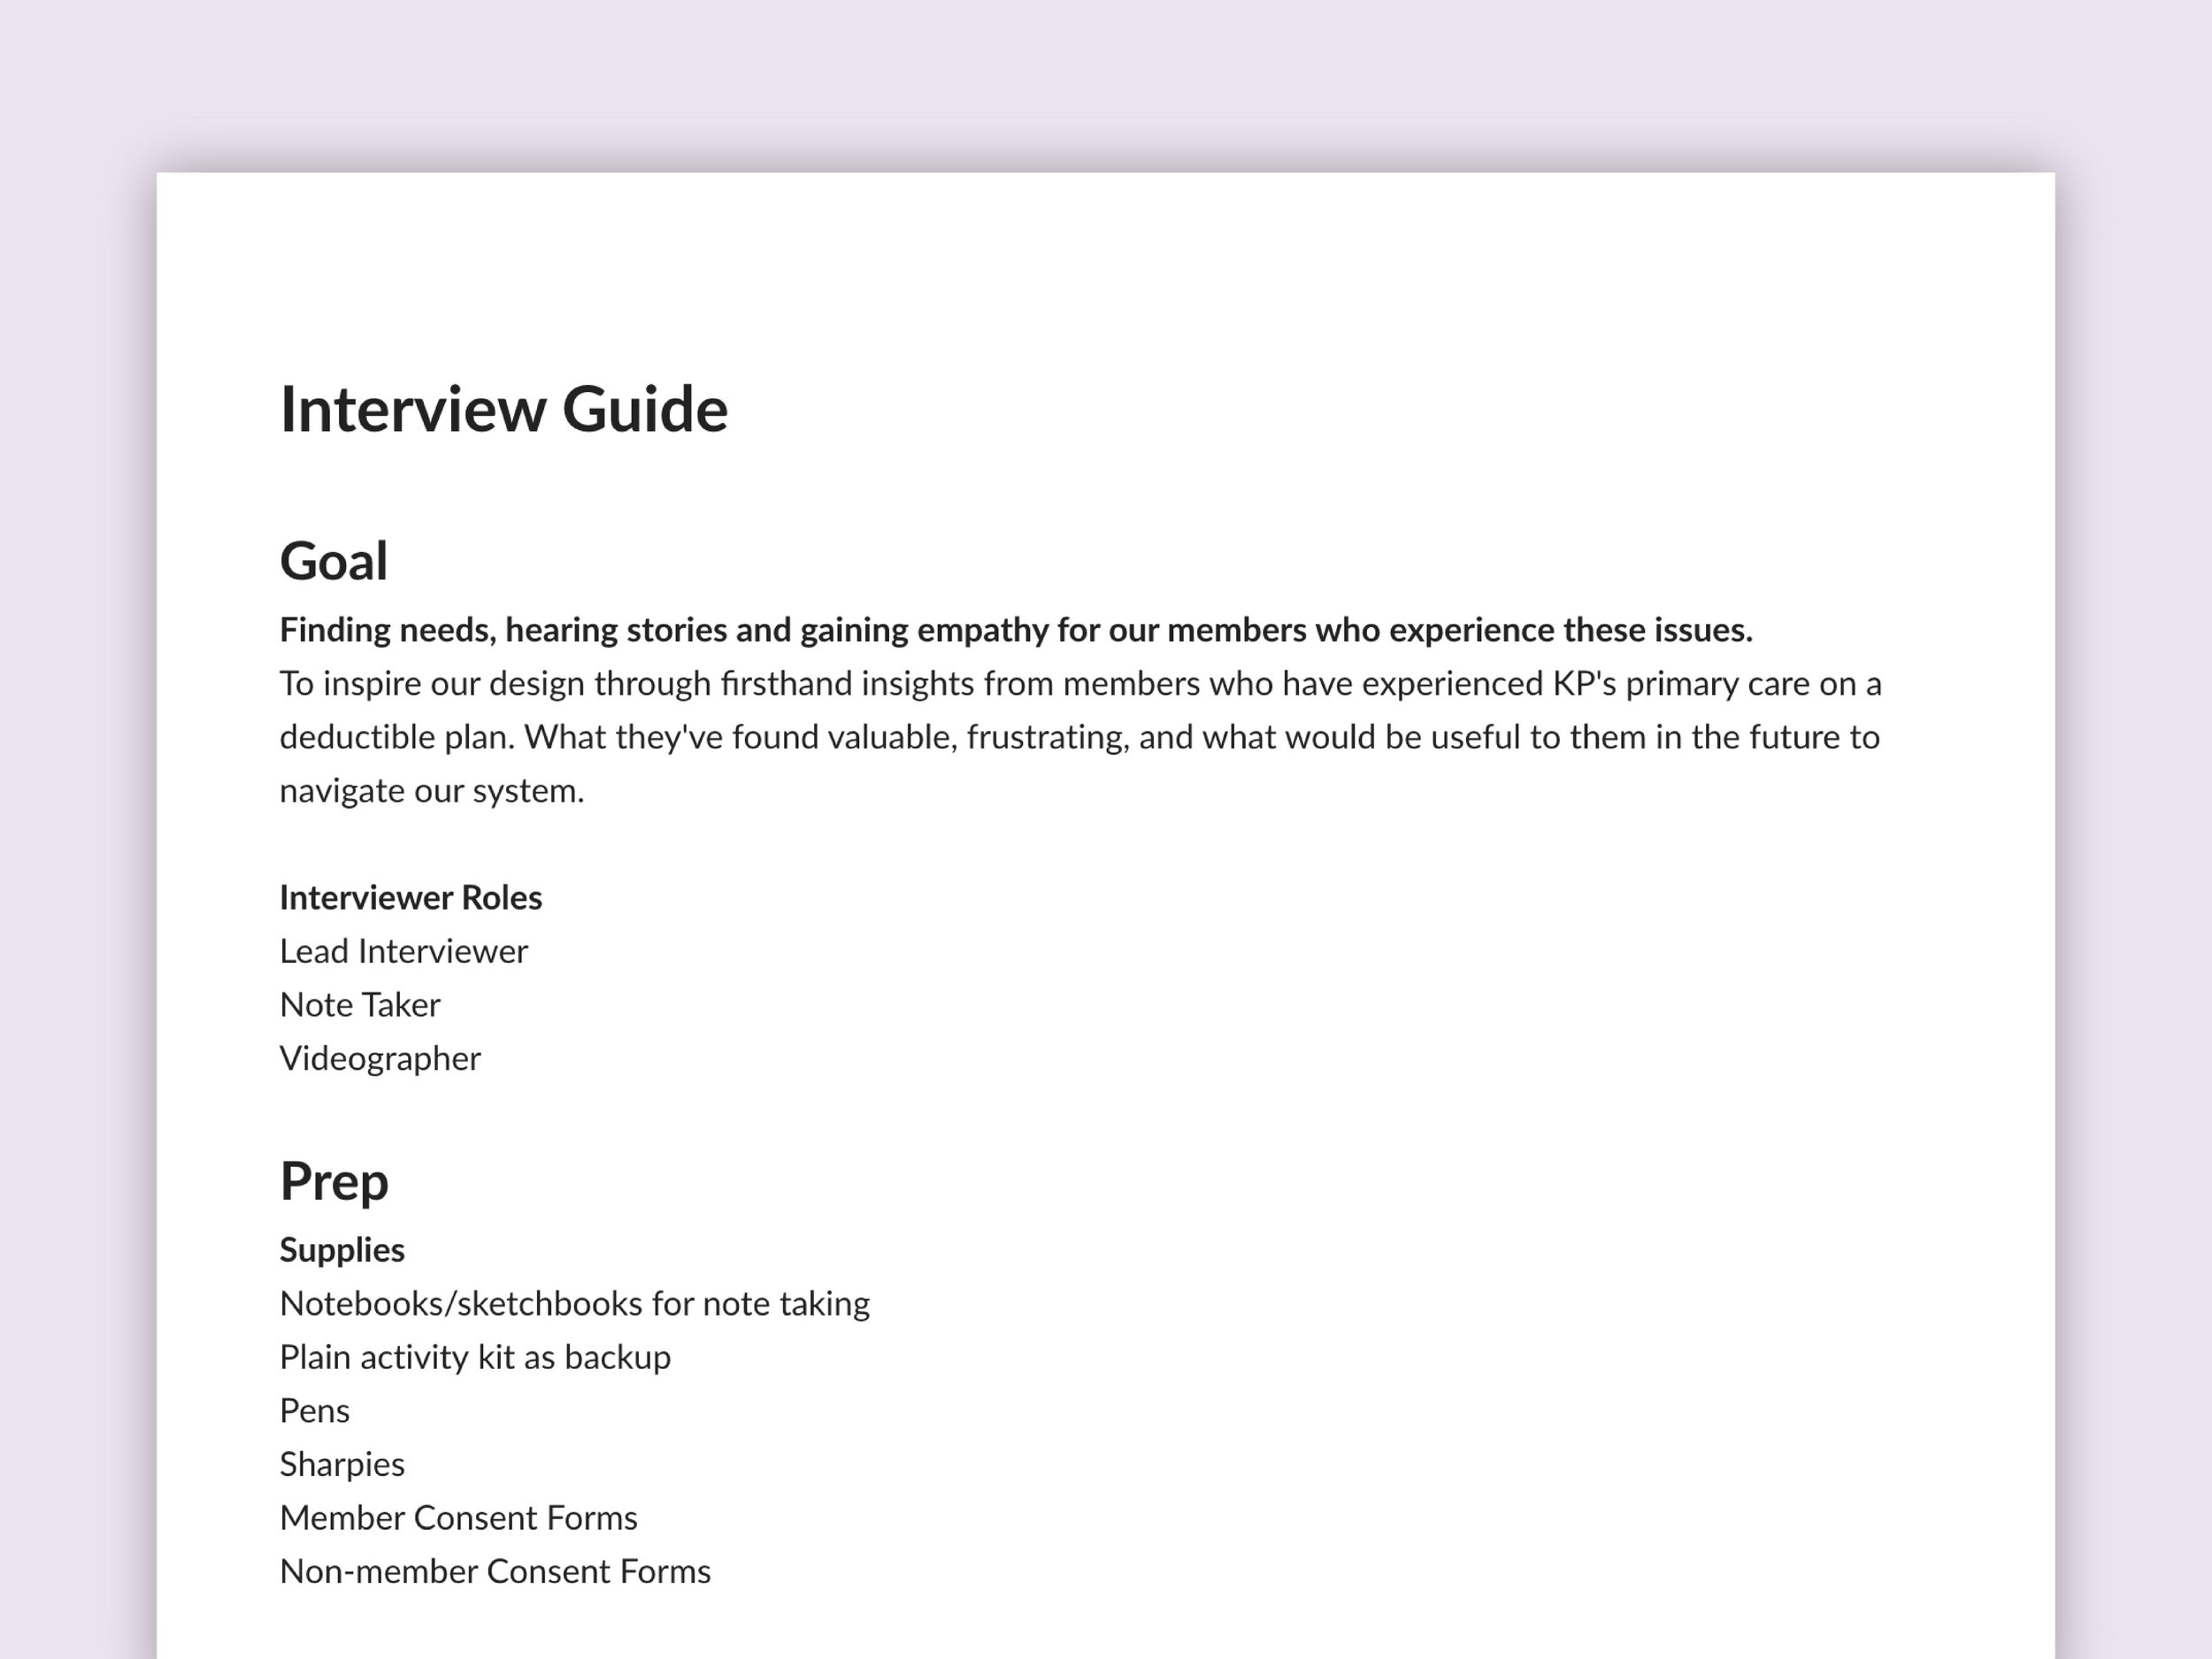 Writing interview guides